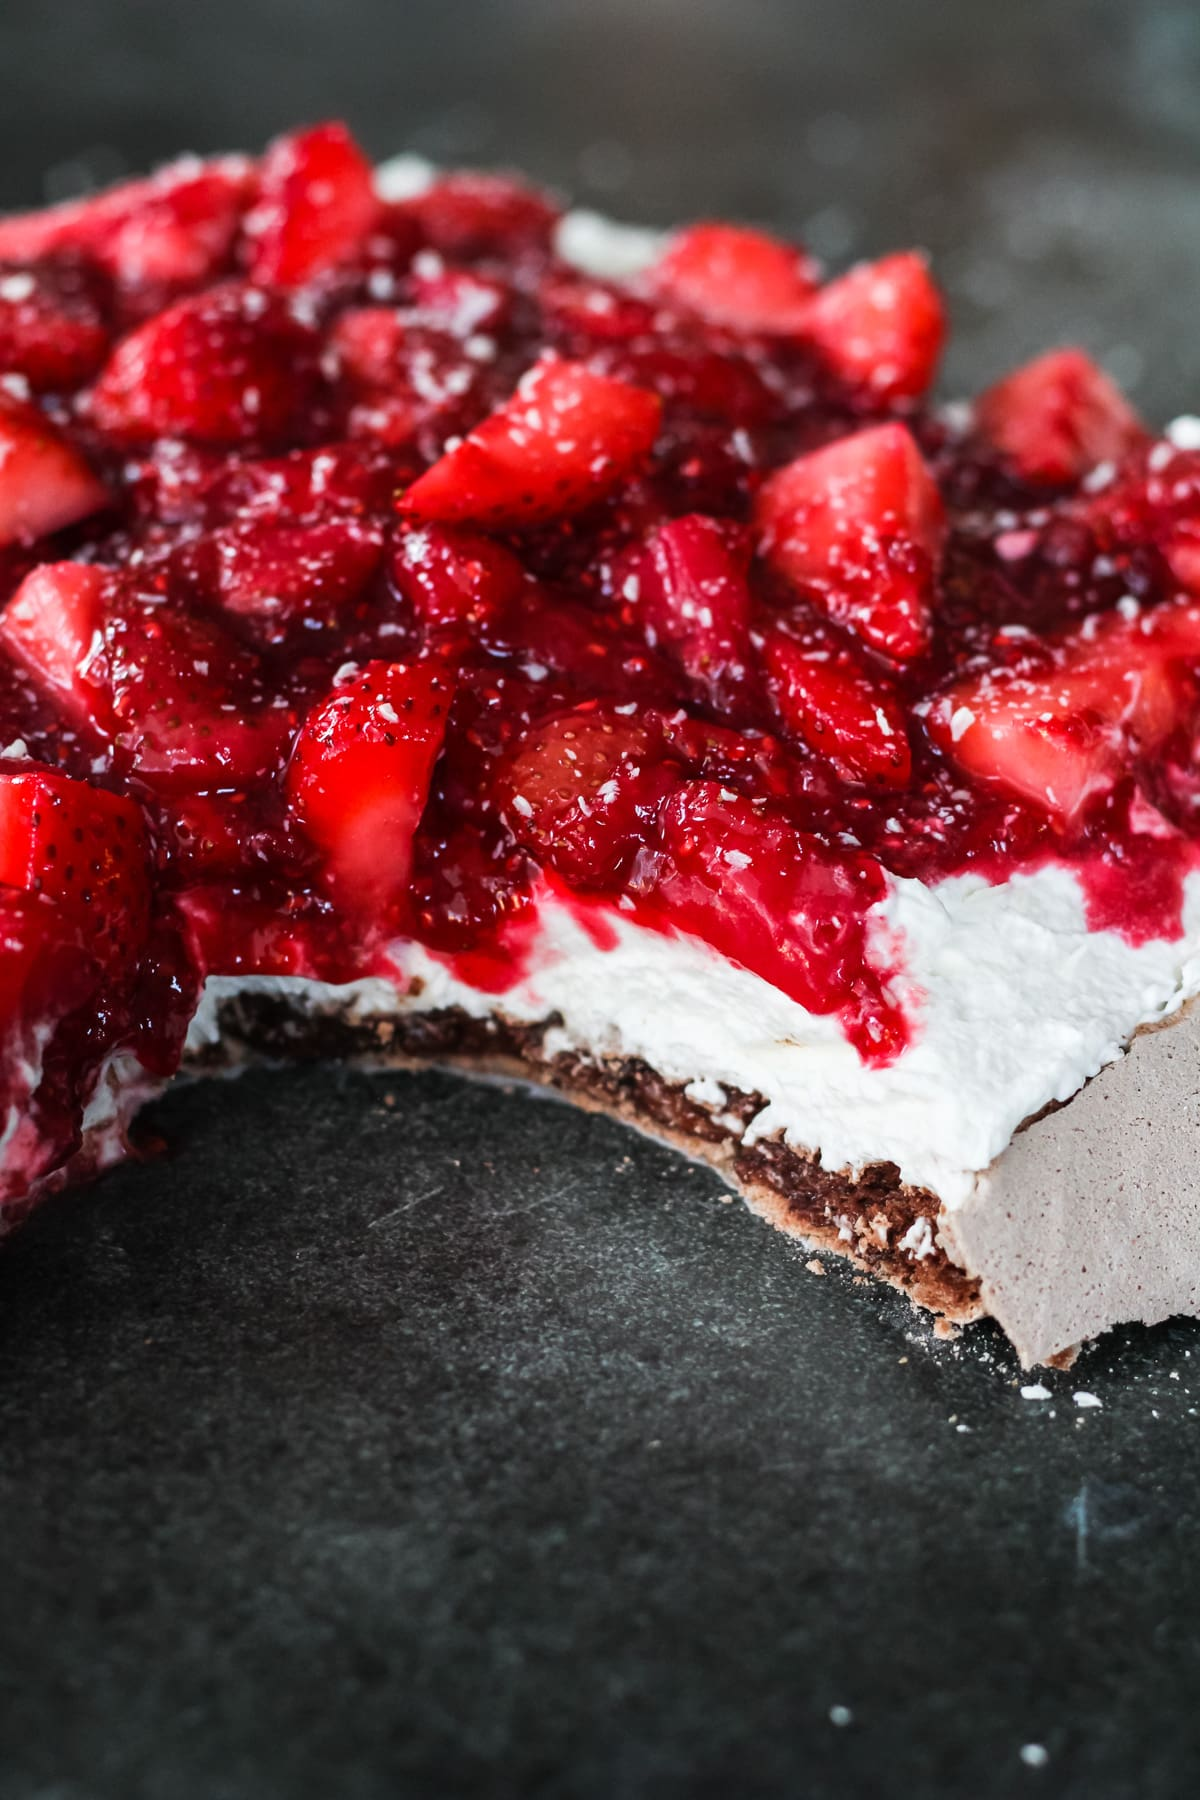 a side view of a chocolate pavlova showing the layers of chocolate meringue, whipping cream and strawberries